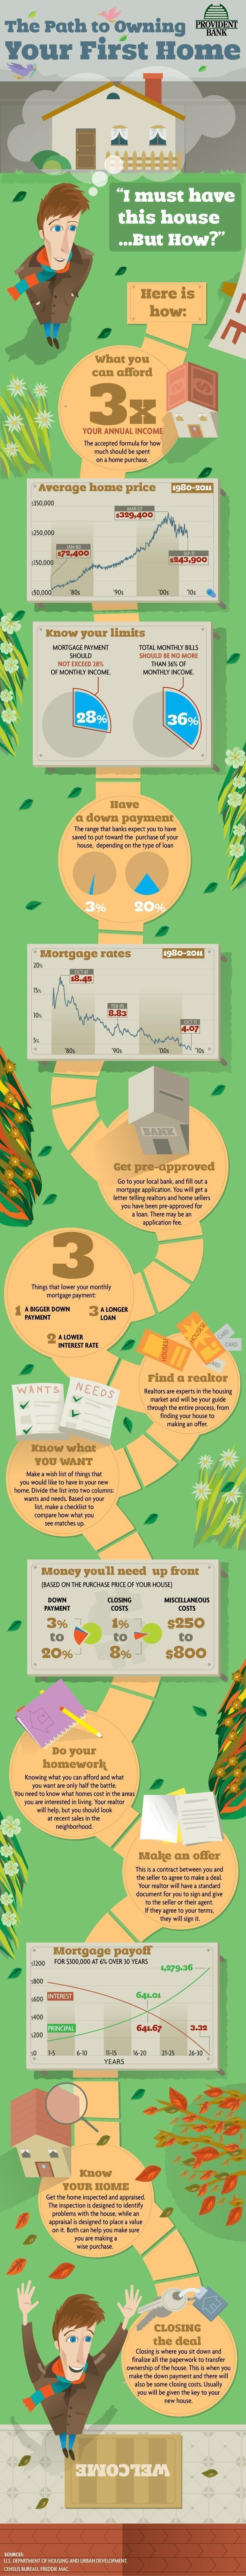 Path To Buying Your First House This Is A Nice Simple Outline Of Things To